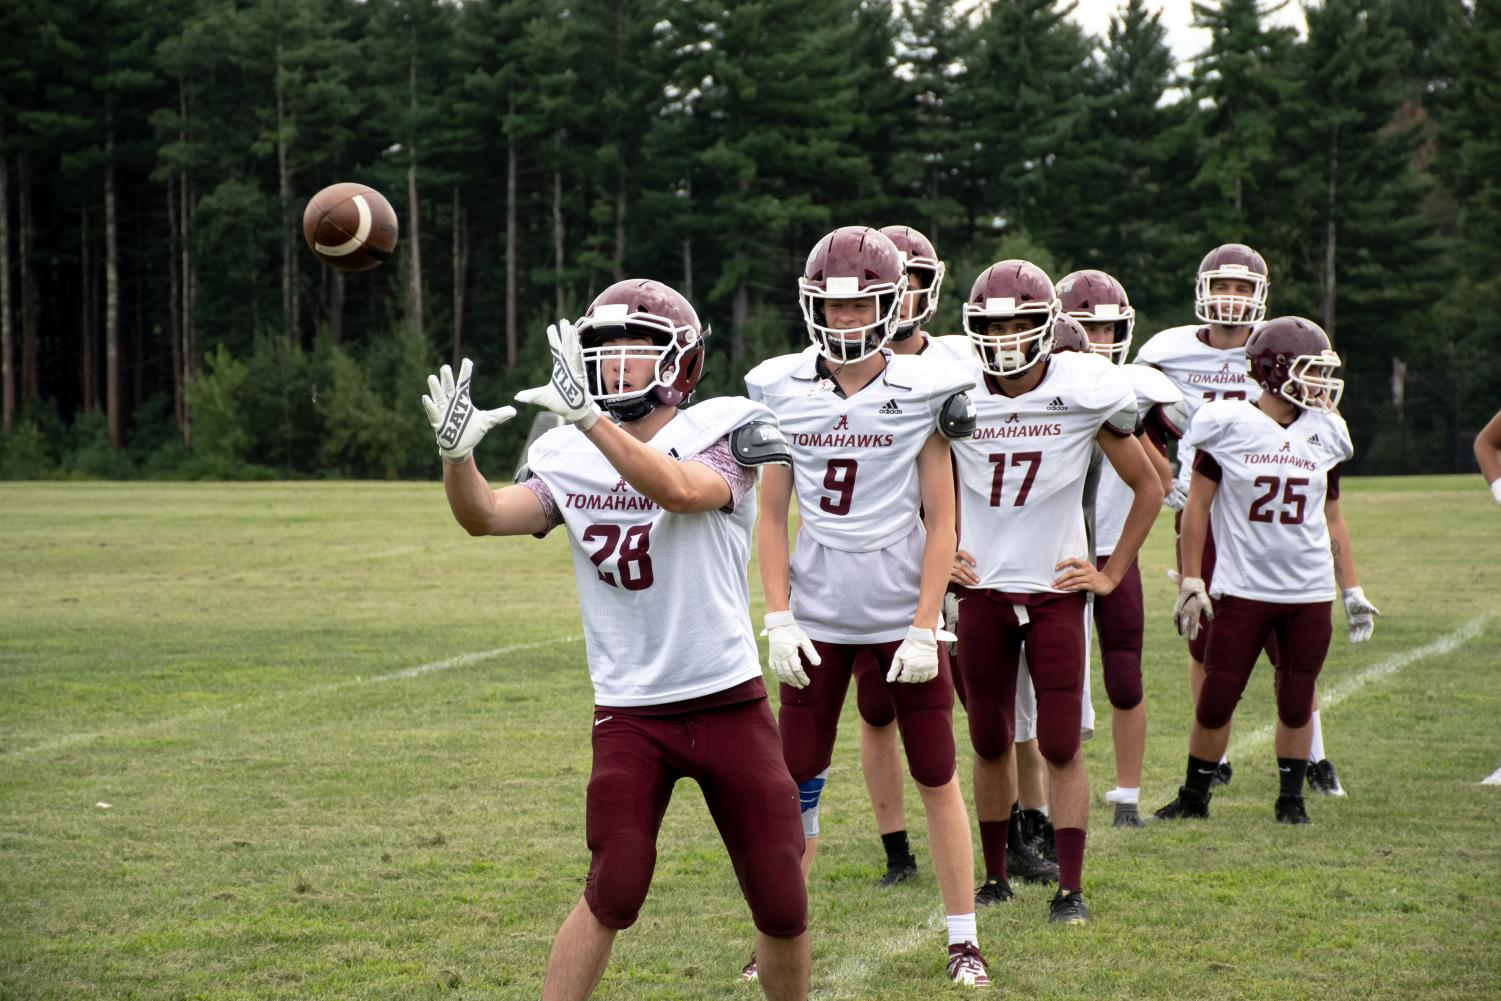 During+a+receiver+drill%2C+senior+Yanni+Batsolakis+attempts+to+catch+the+ball+thrown+to+him+as+his+teammates+look+on.